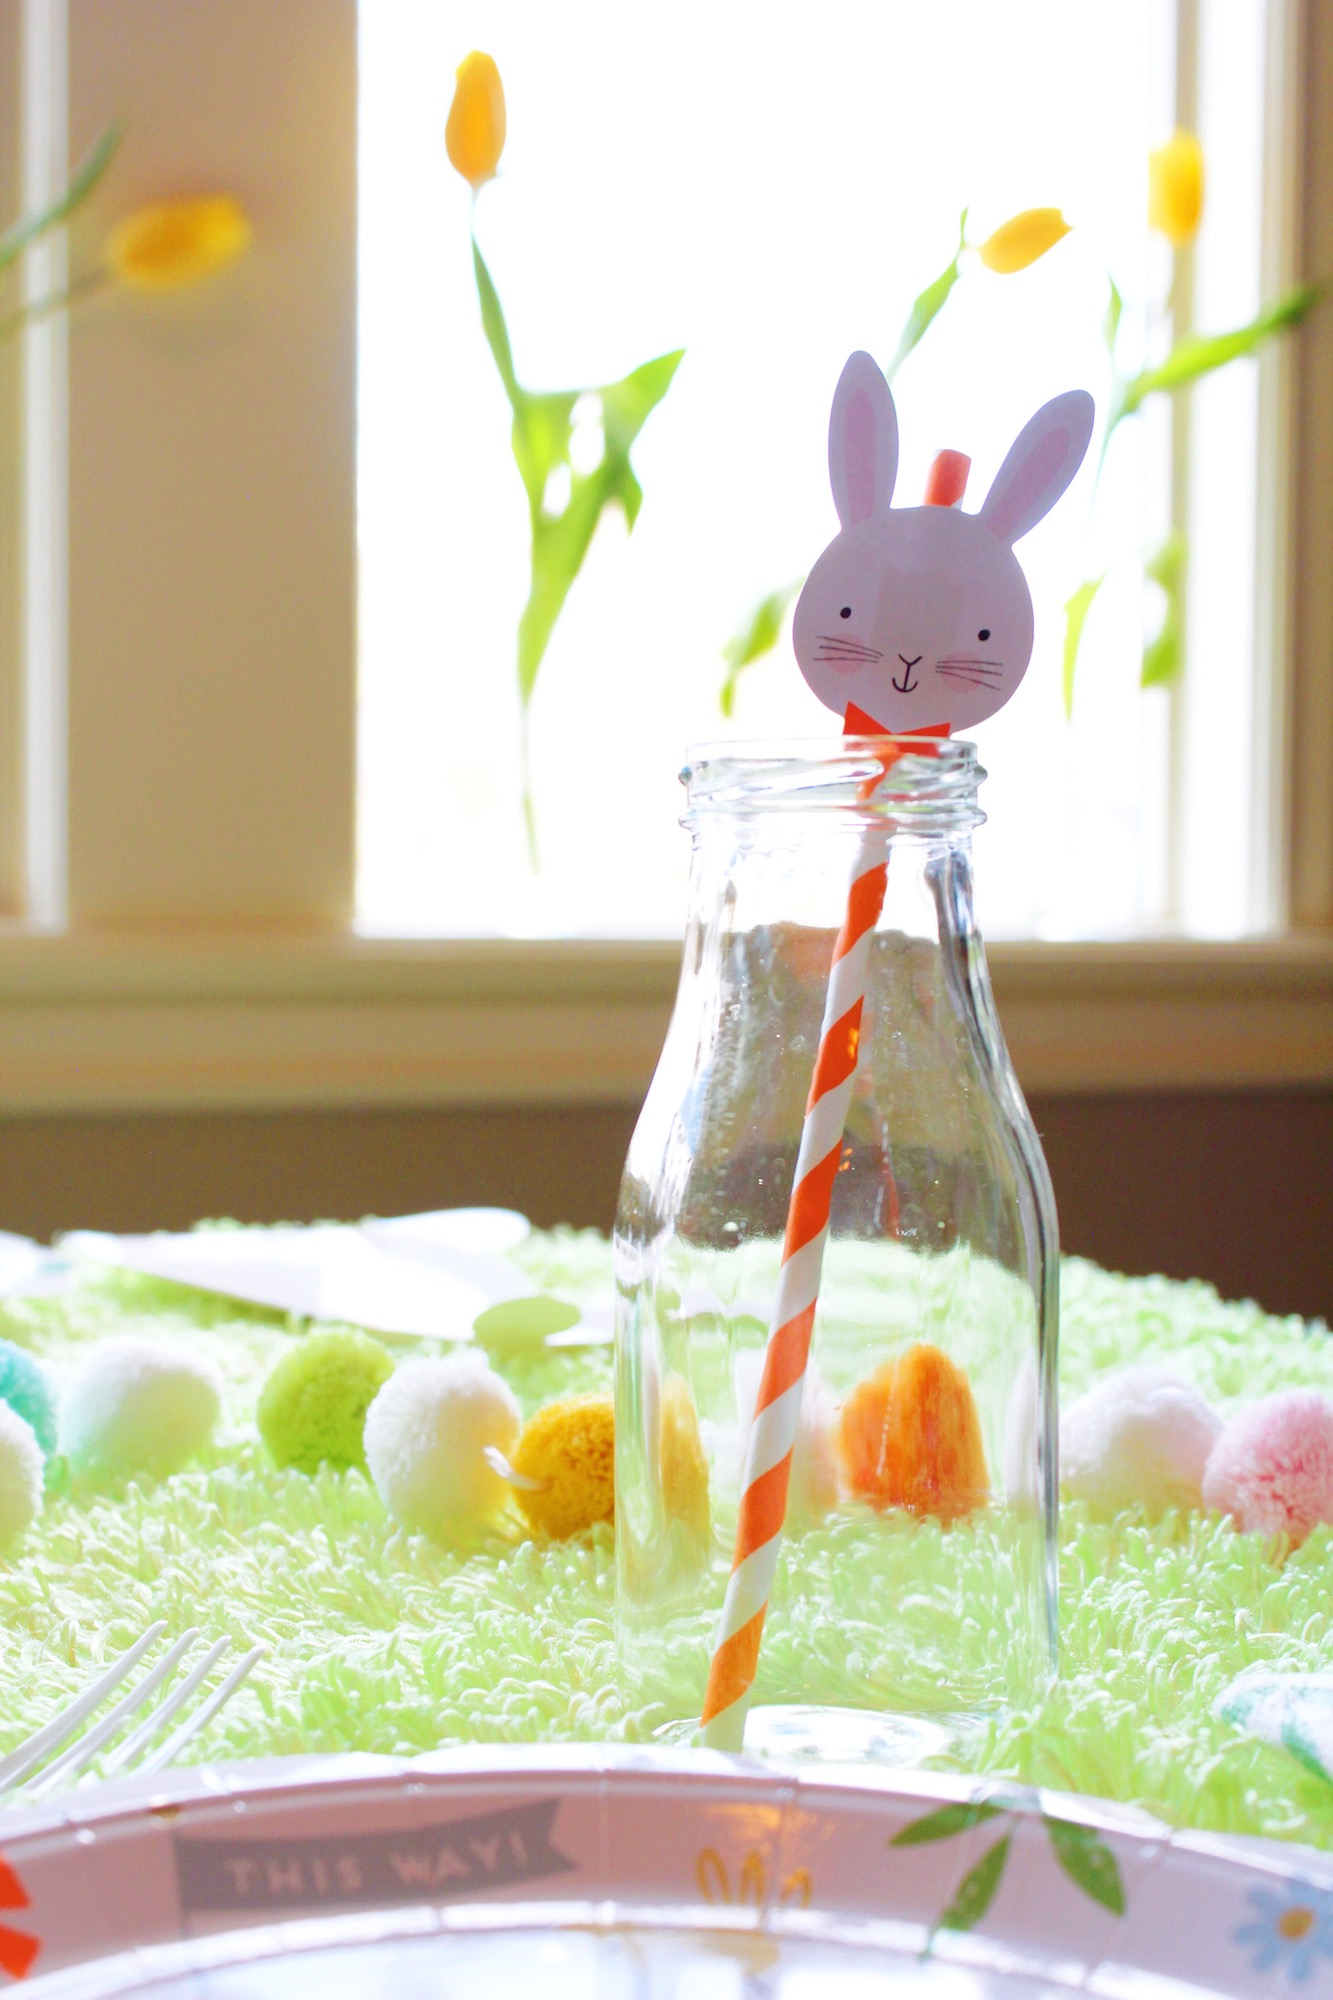 Easter Bunny Morning Egg Hunt Breakfast_Rabbit Straw_Design Organize Party.JPG